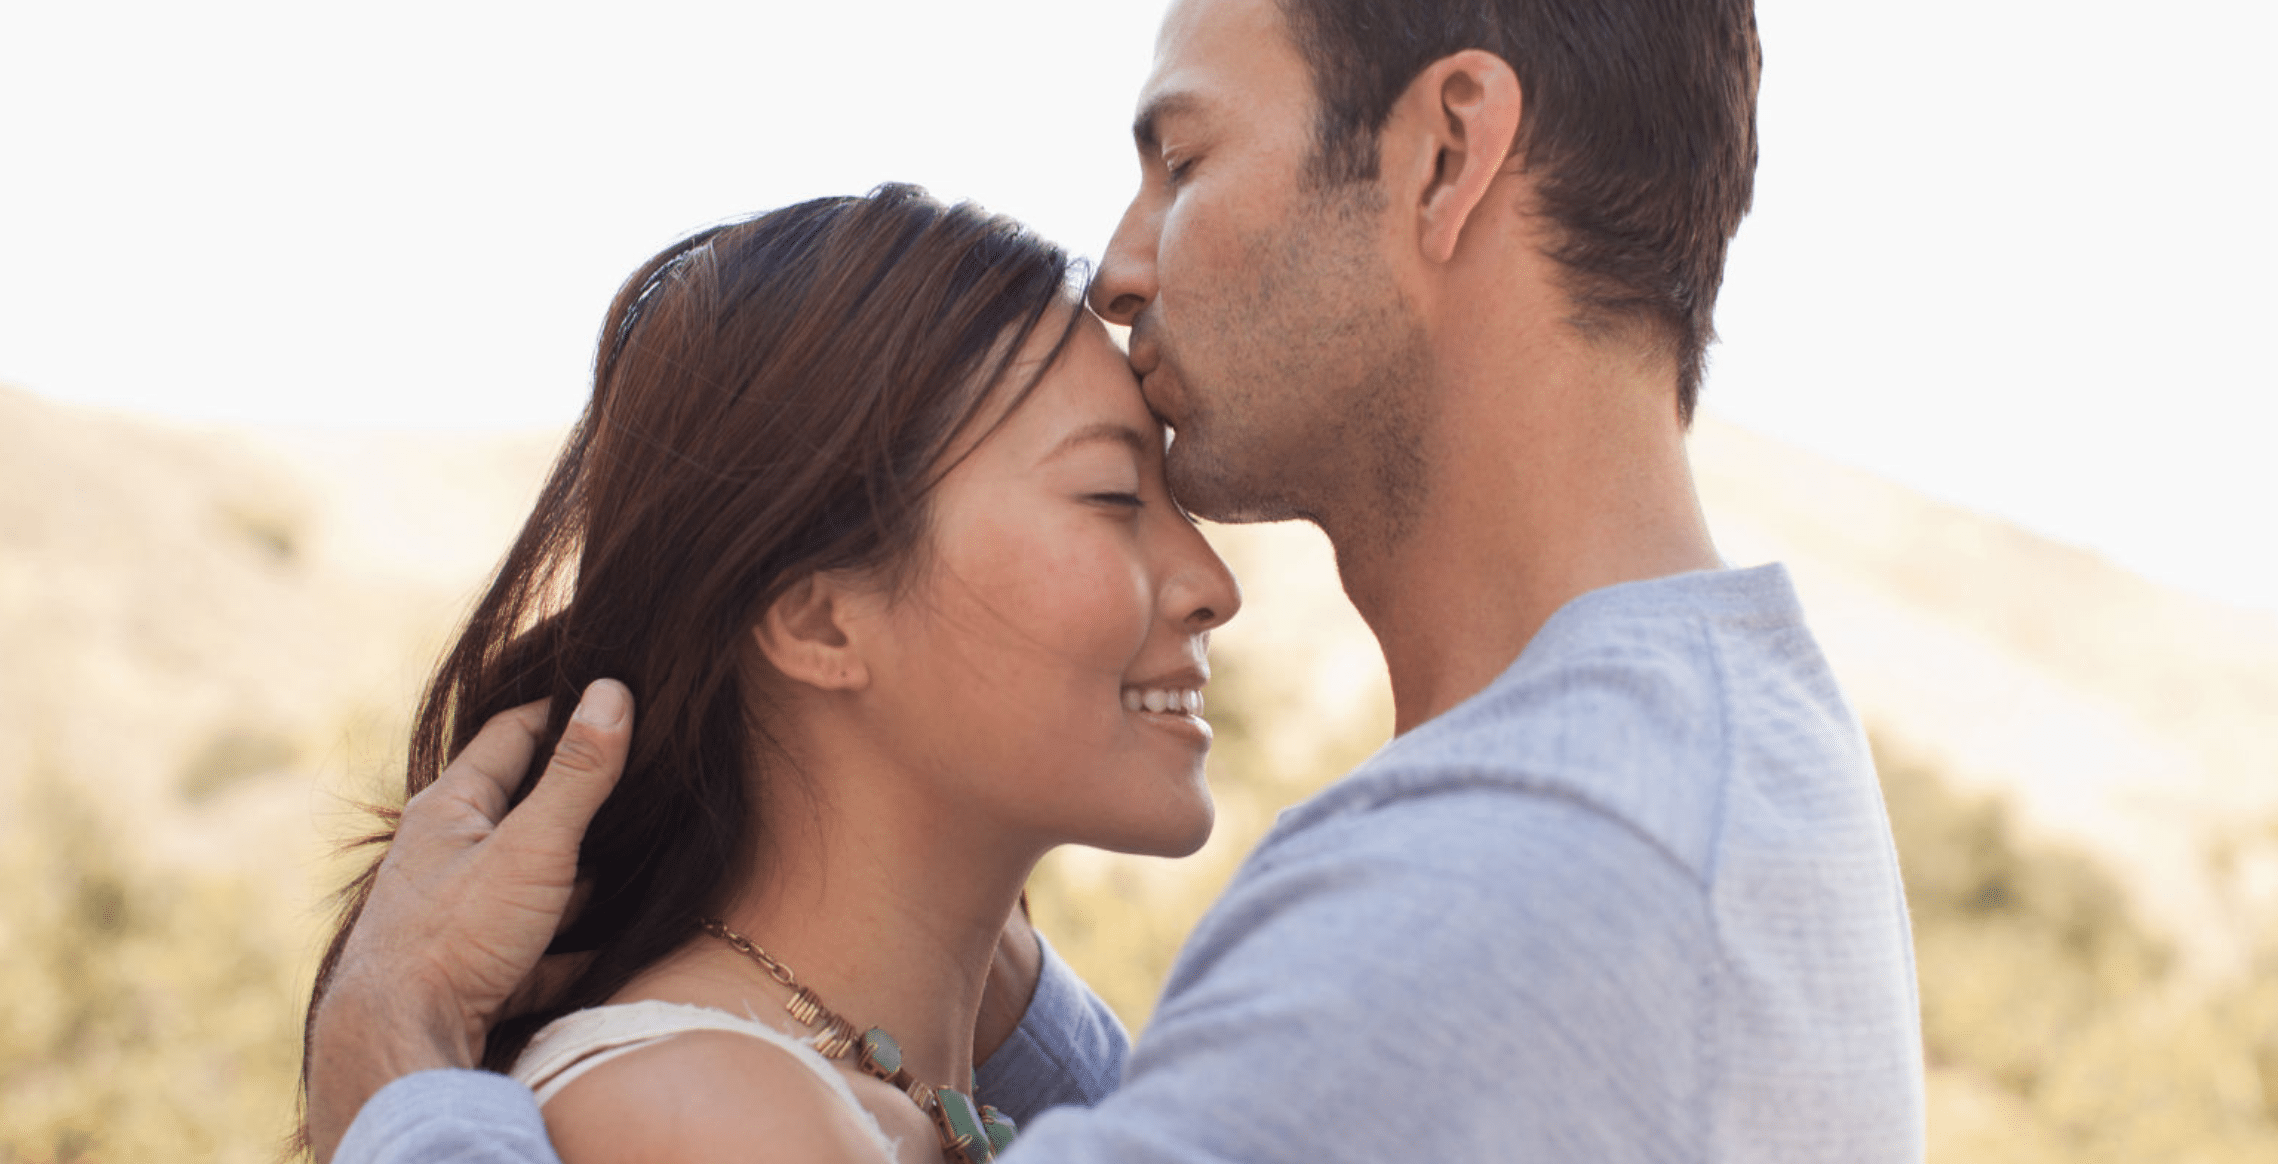 Ways to Tell Him You Love Him Without Words